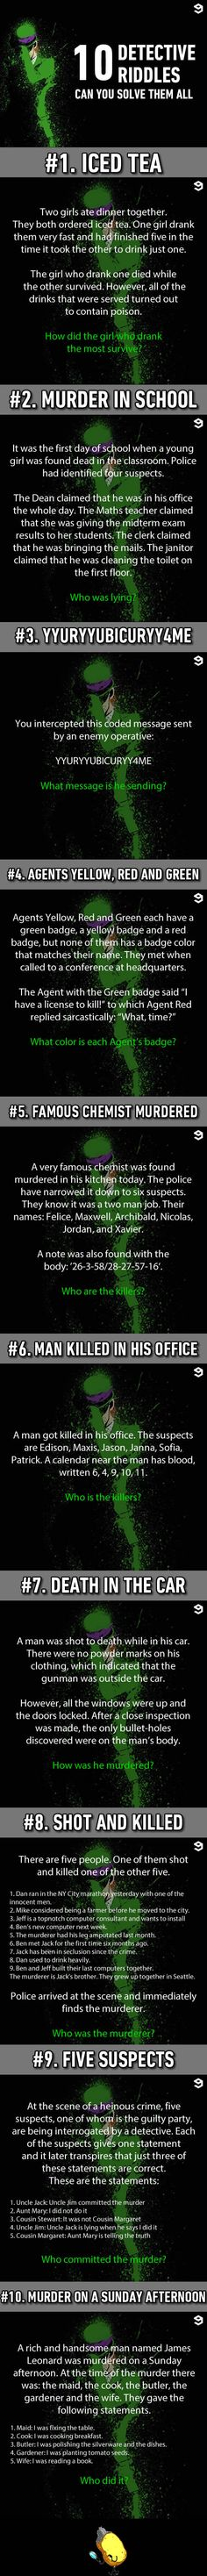 16 Murder Riddles That Would Bring Out The Sherlock In You